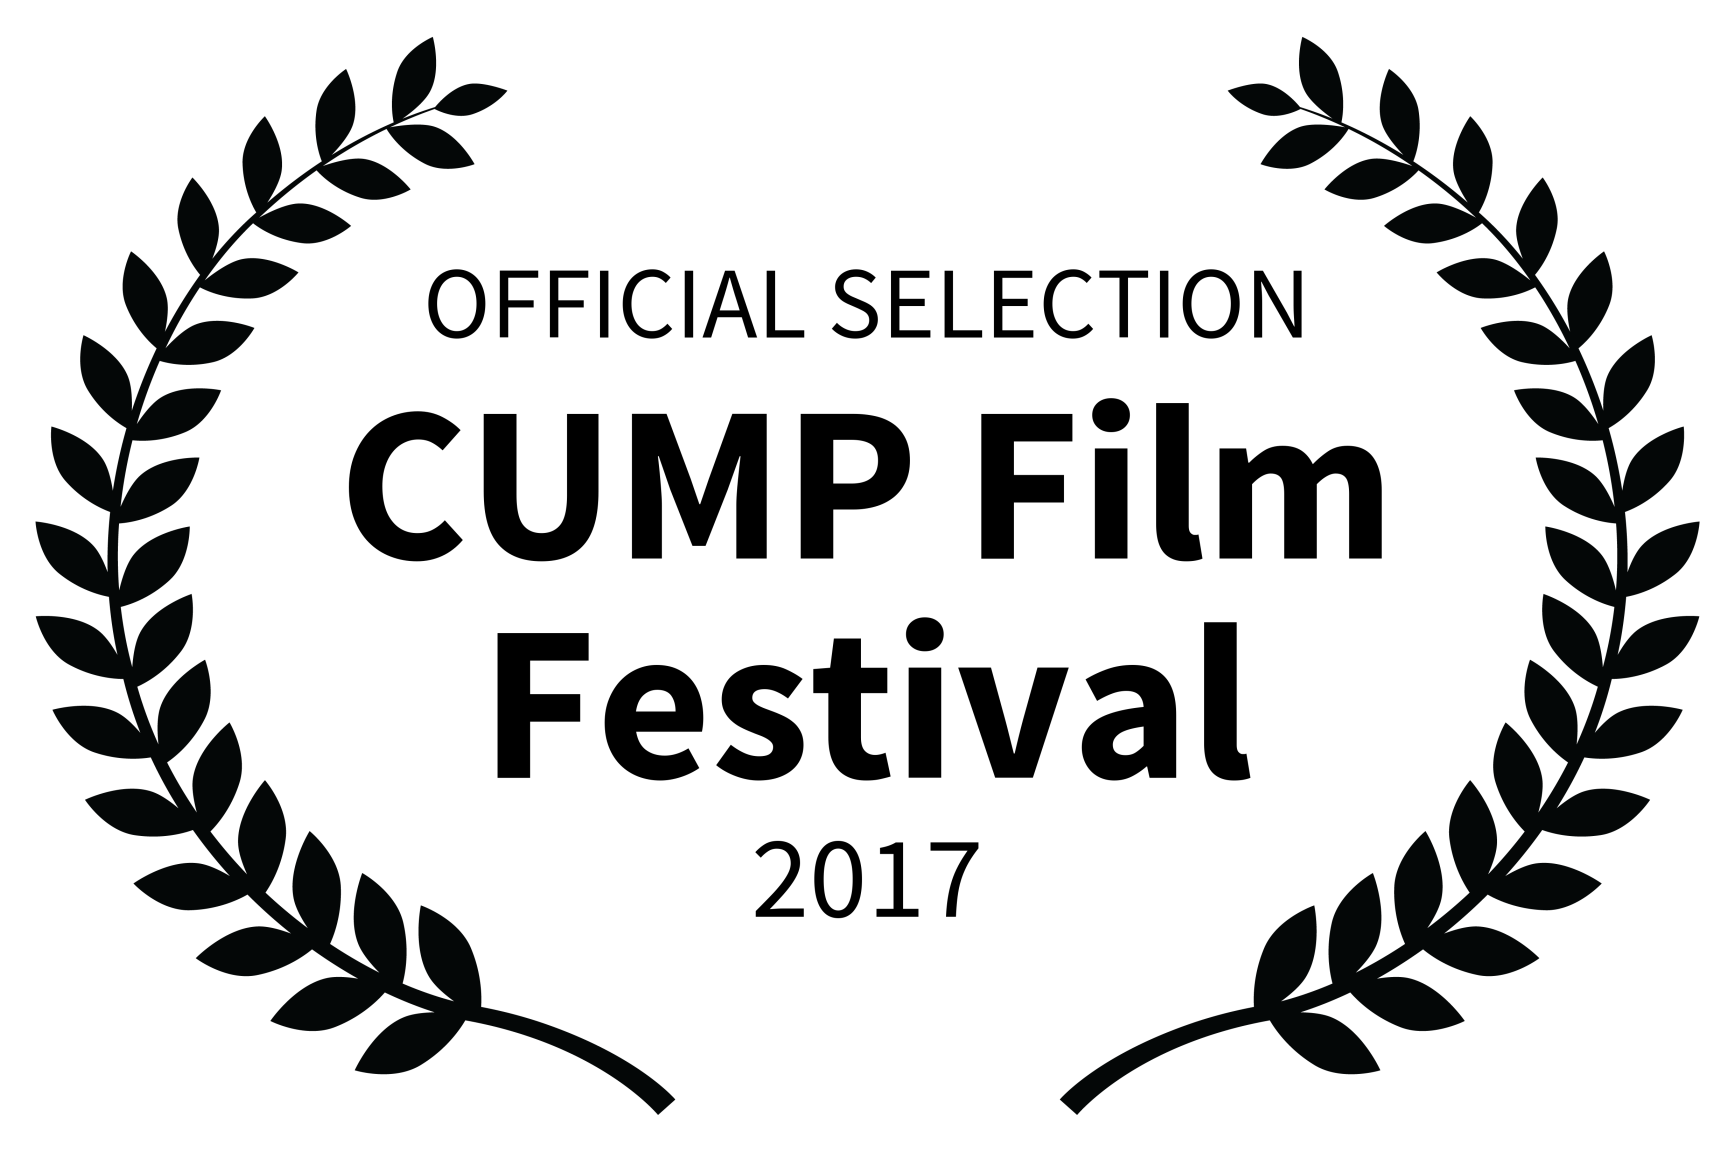 OFFICIAL SELECTION - CUMP Film Festival